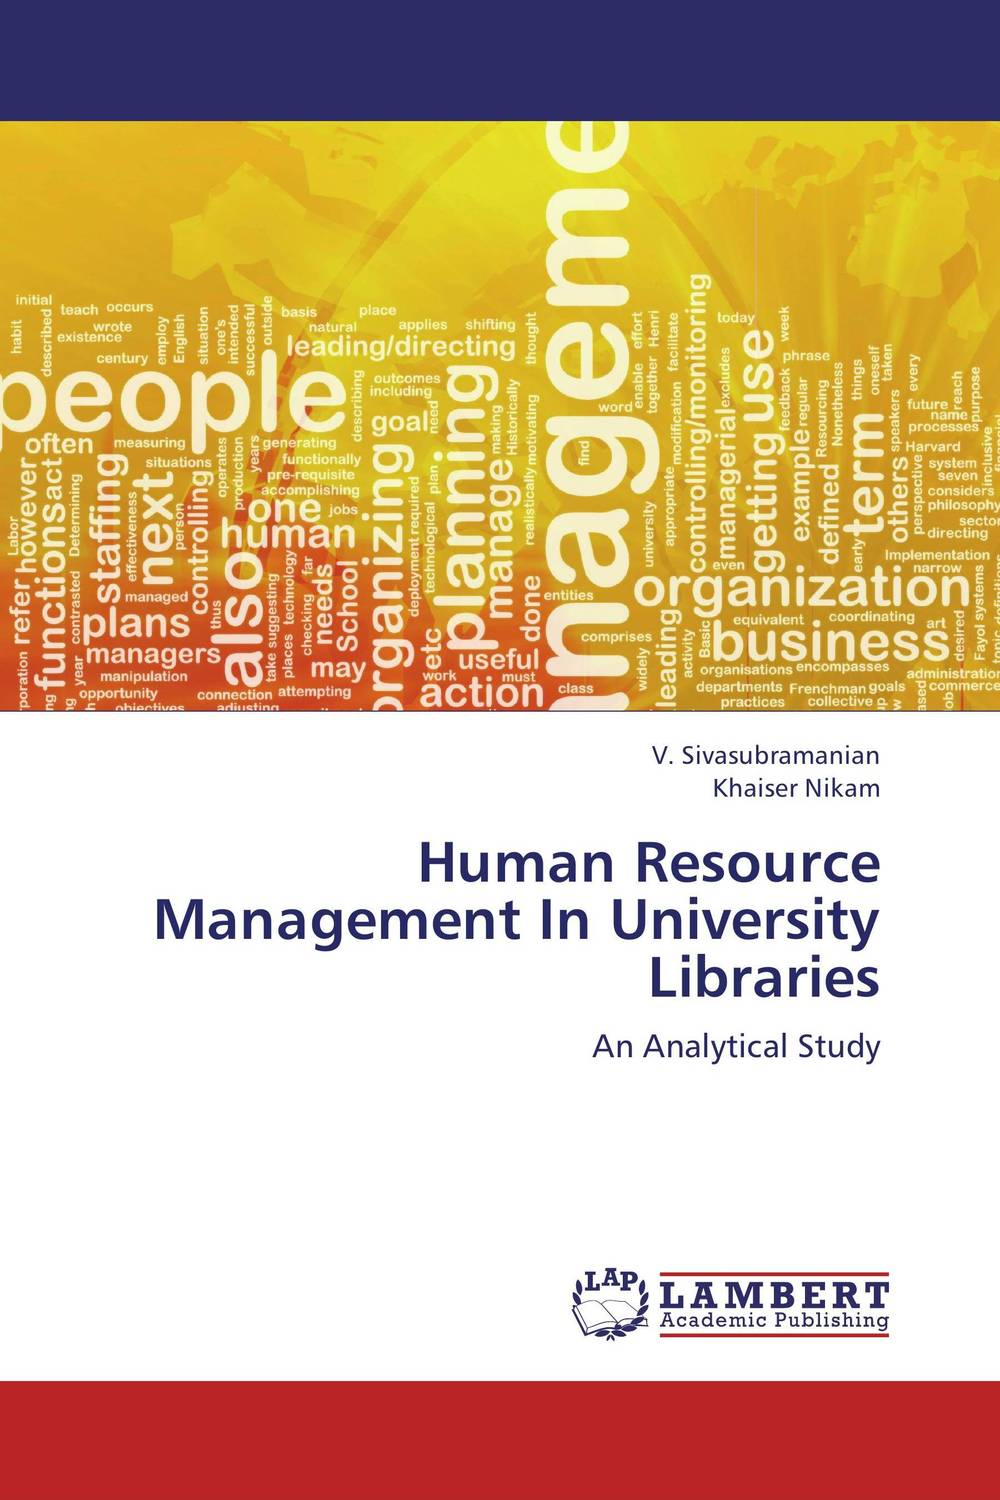 Human Resource Management In University Libraries establishment management and organization of university libraries